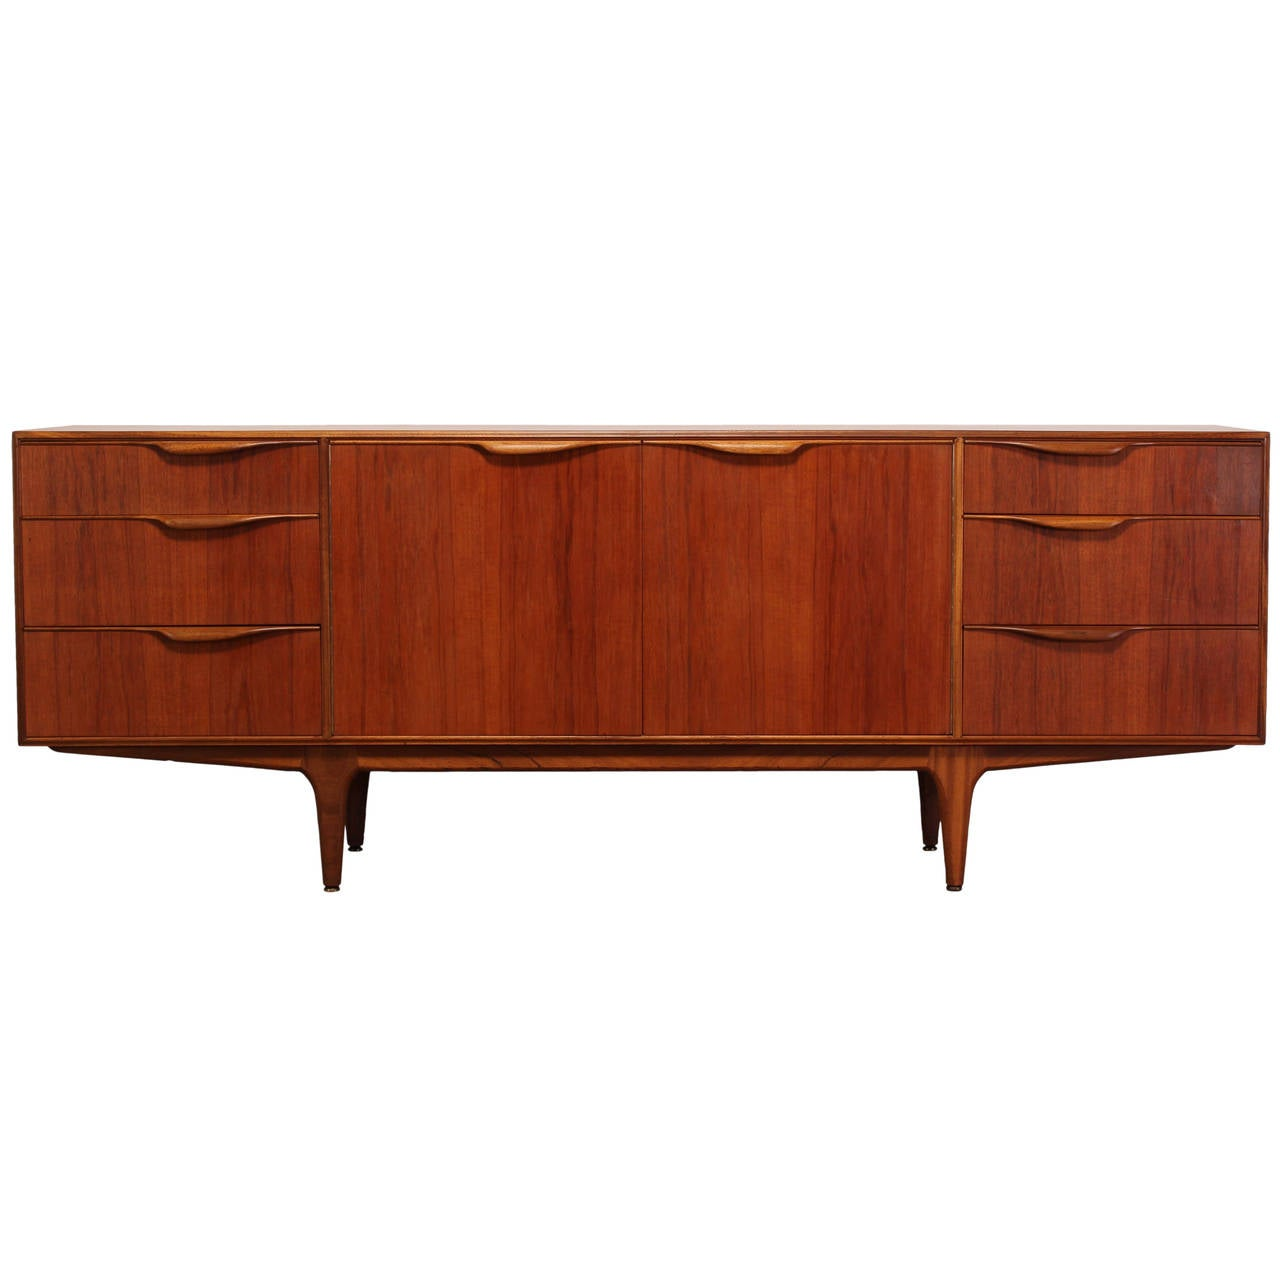 danish style teak mid century modern credenza or sideboard. Black Bedroom Furniture Sets. Home Design Ideas